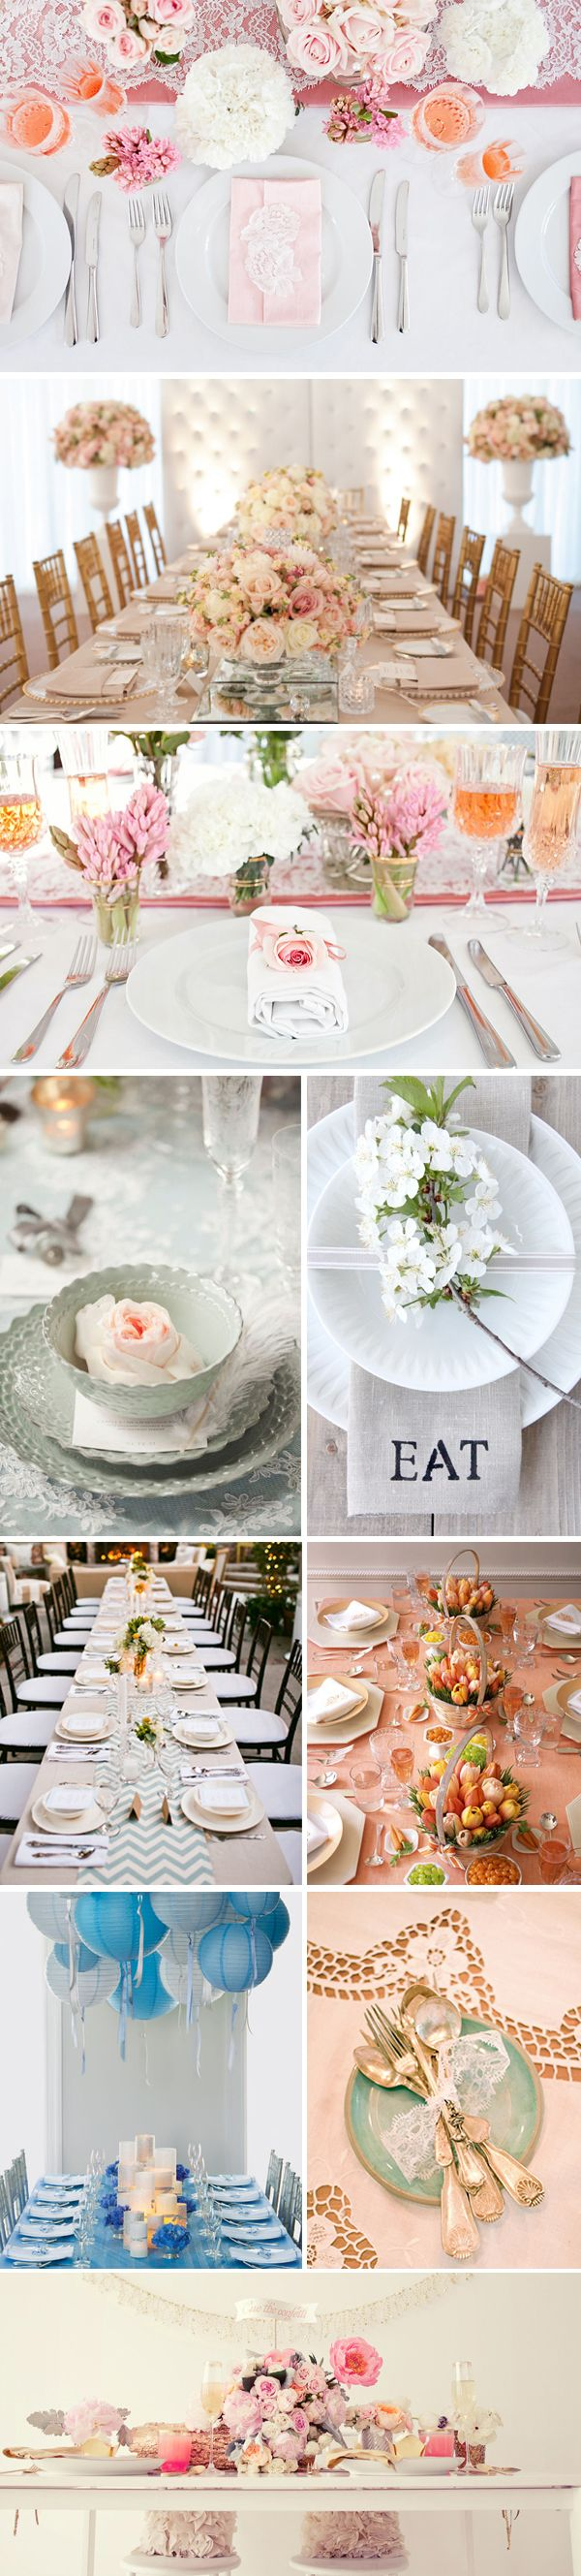 wedding table settings i like the pink napkin on the top pic & how the napkins hold the menus on the second pic. Just like Ashley want it